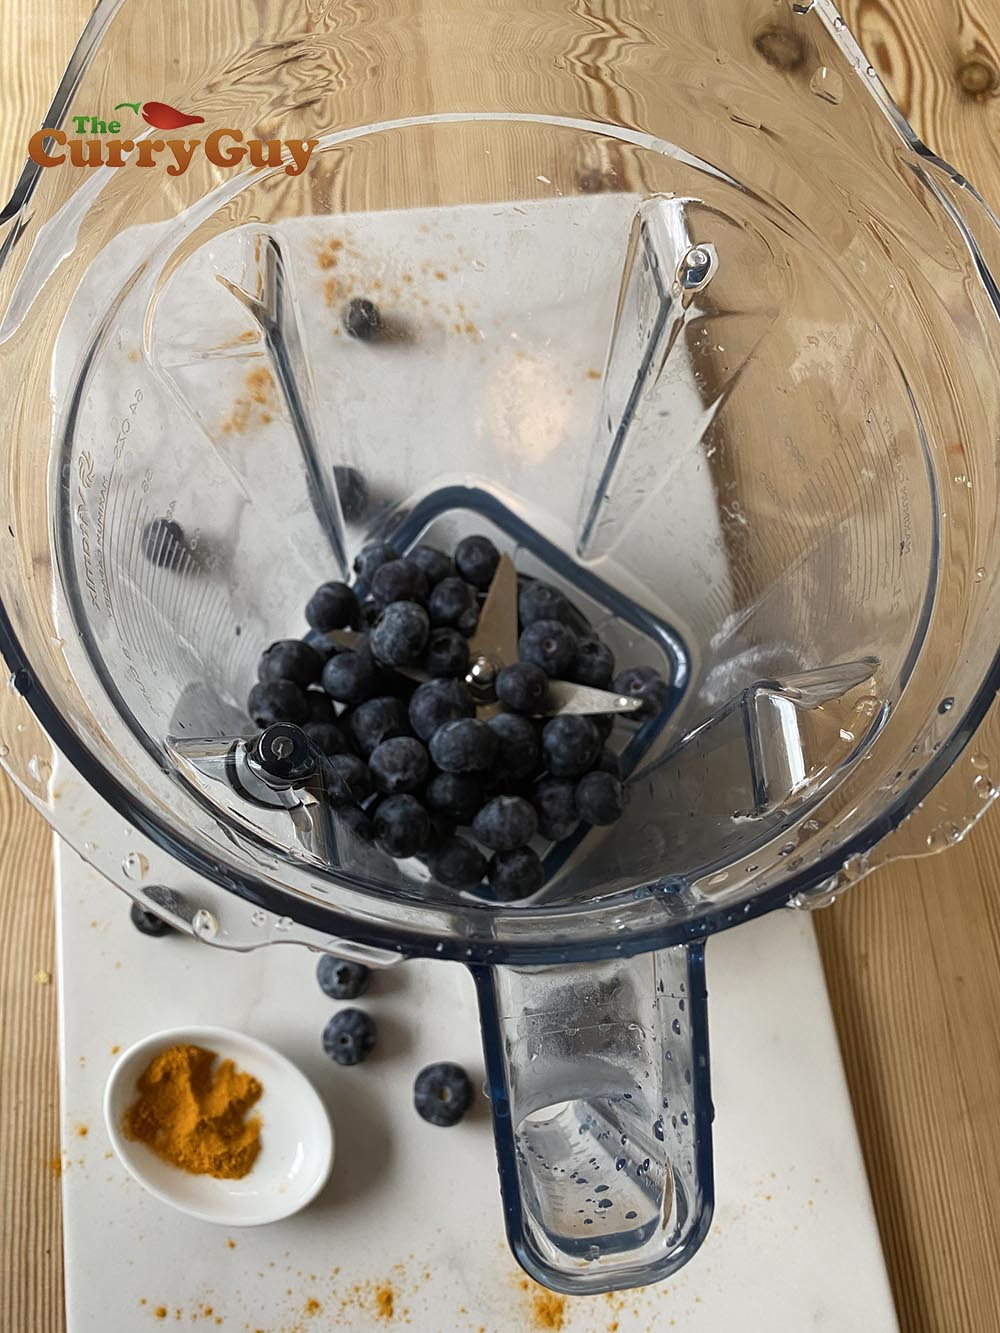 Adding the blueberries to the blender